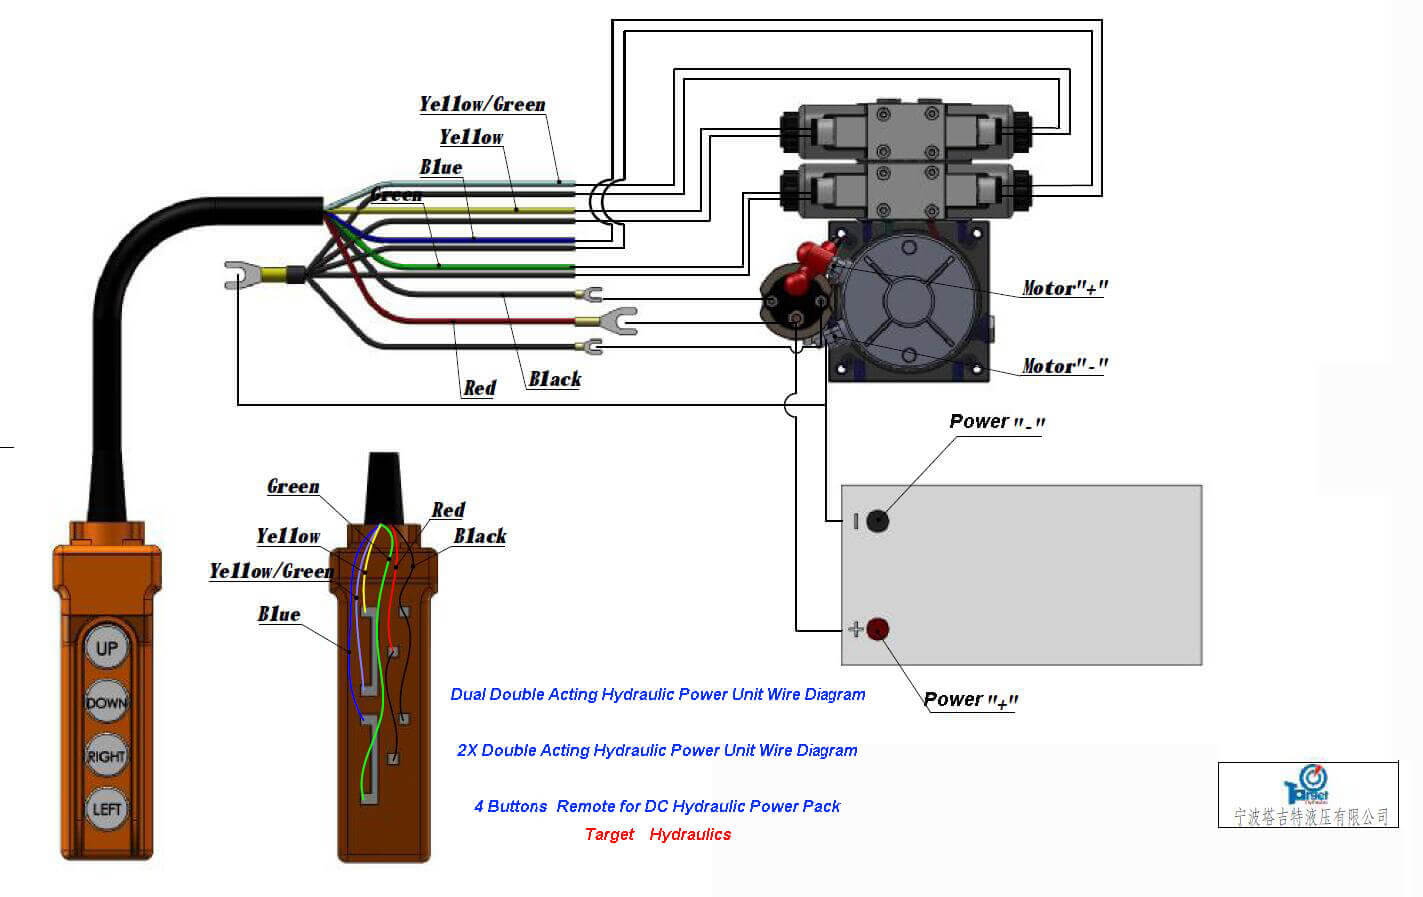 How To Wire Hydraulic Power Packpower Unit Diagram Design Motor Schematic Dc Double Acting Pack Dual Cylinder Units Wiring